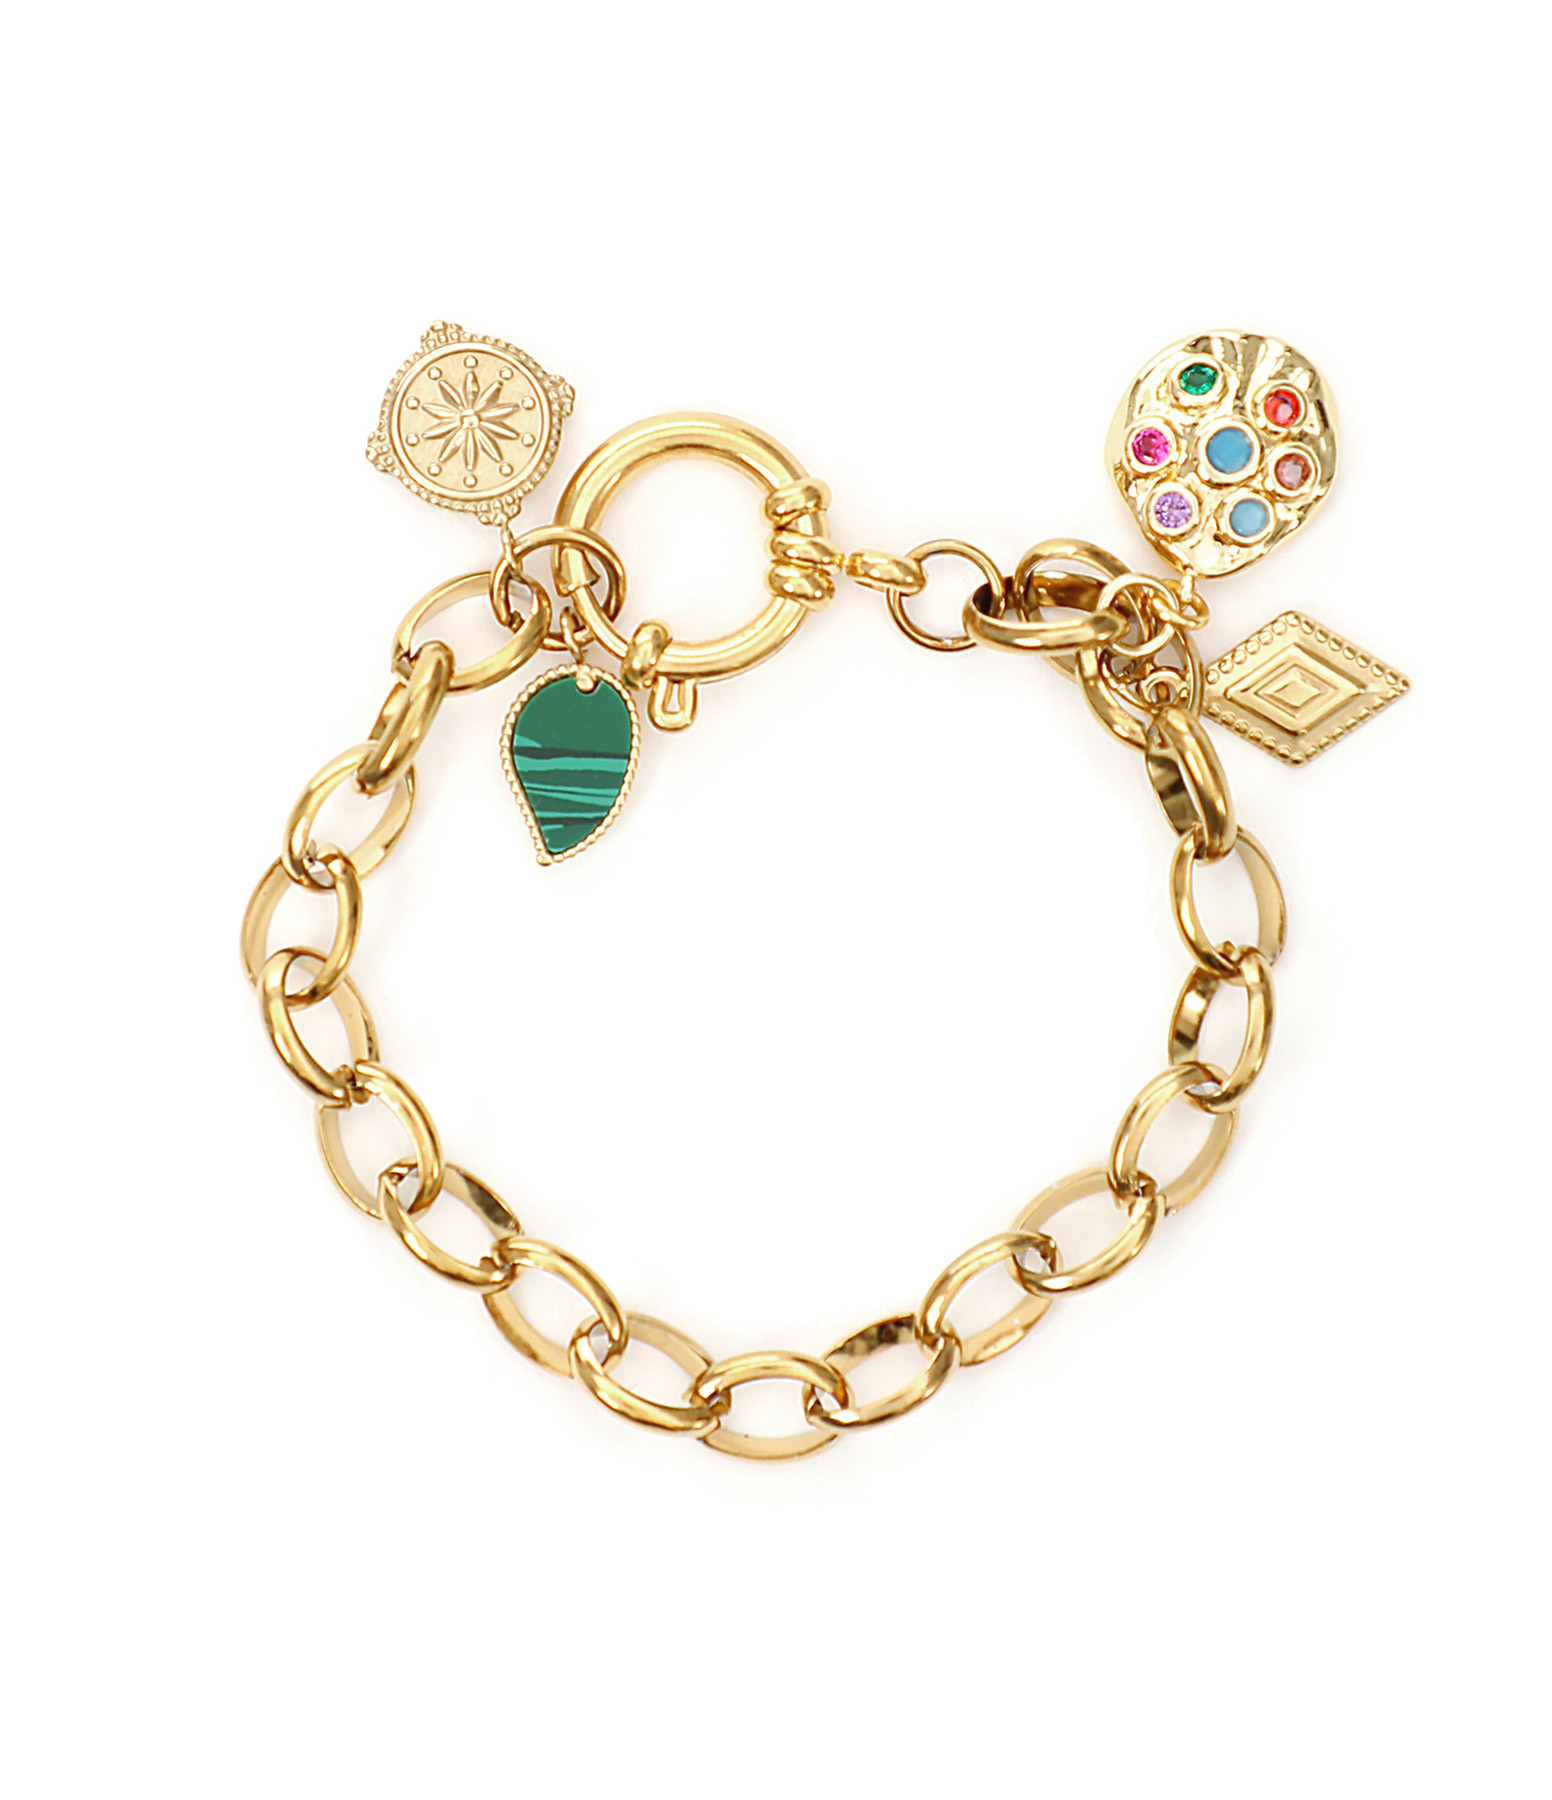 SHAKER JEWELS - Bracelet Rulli Charms Maille Plaqué Or